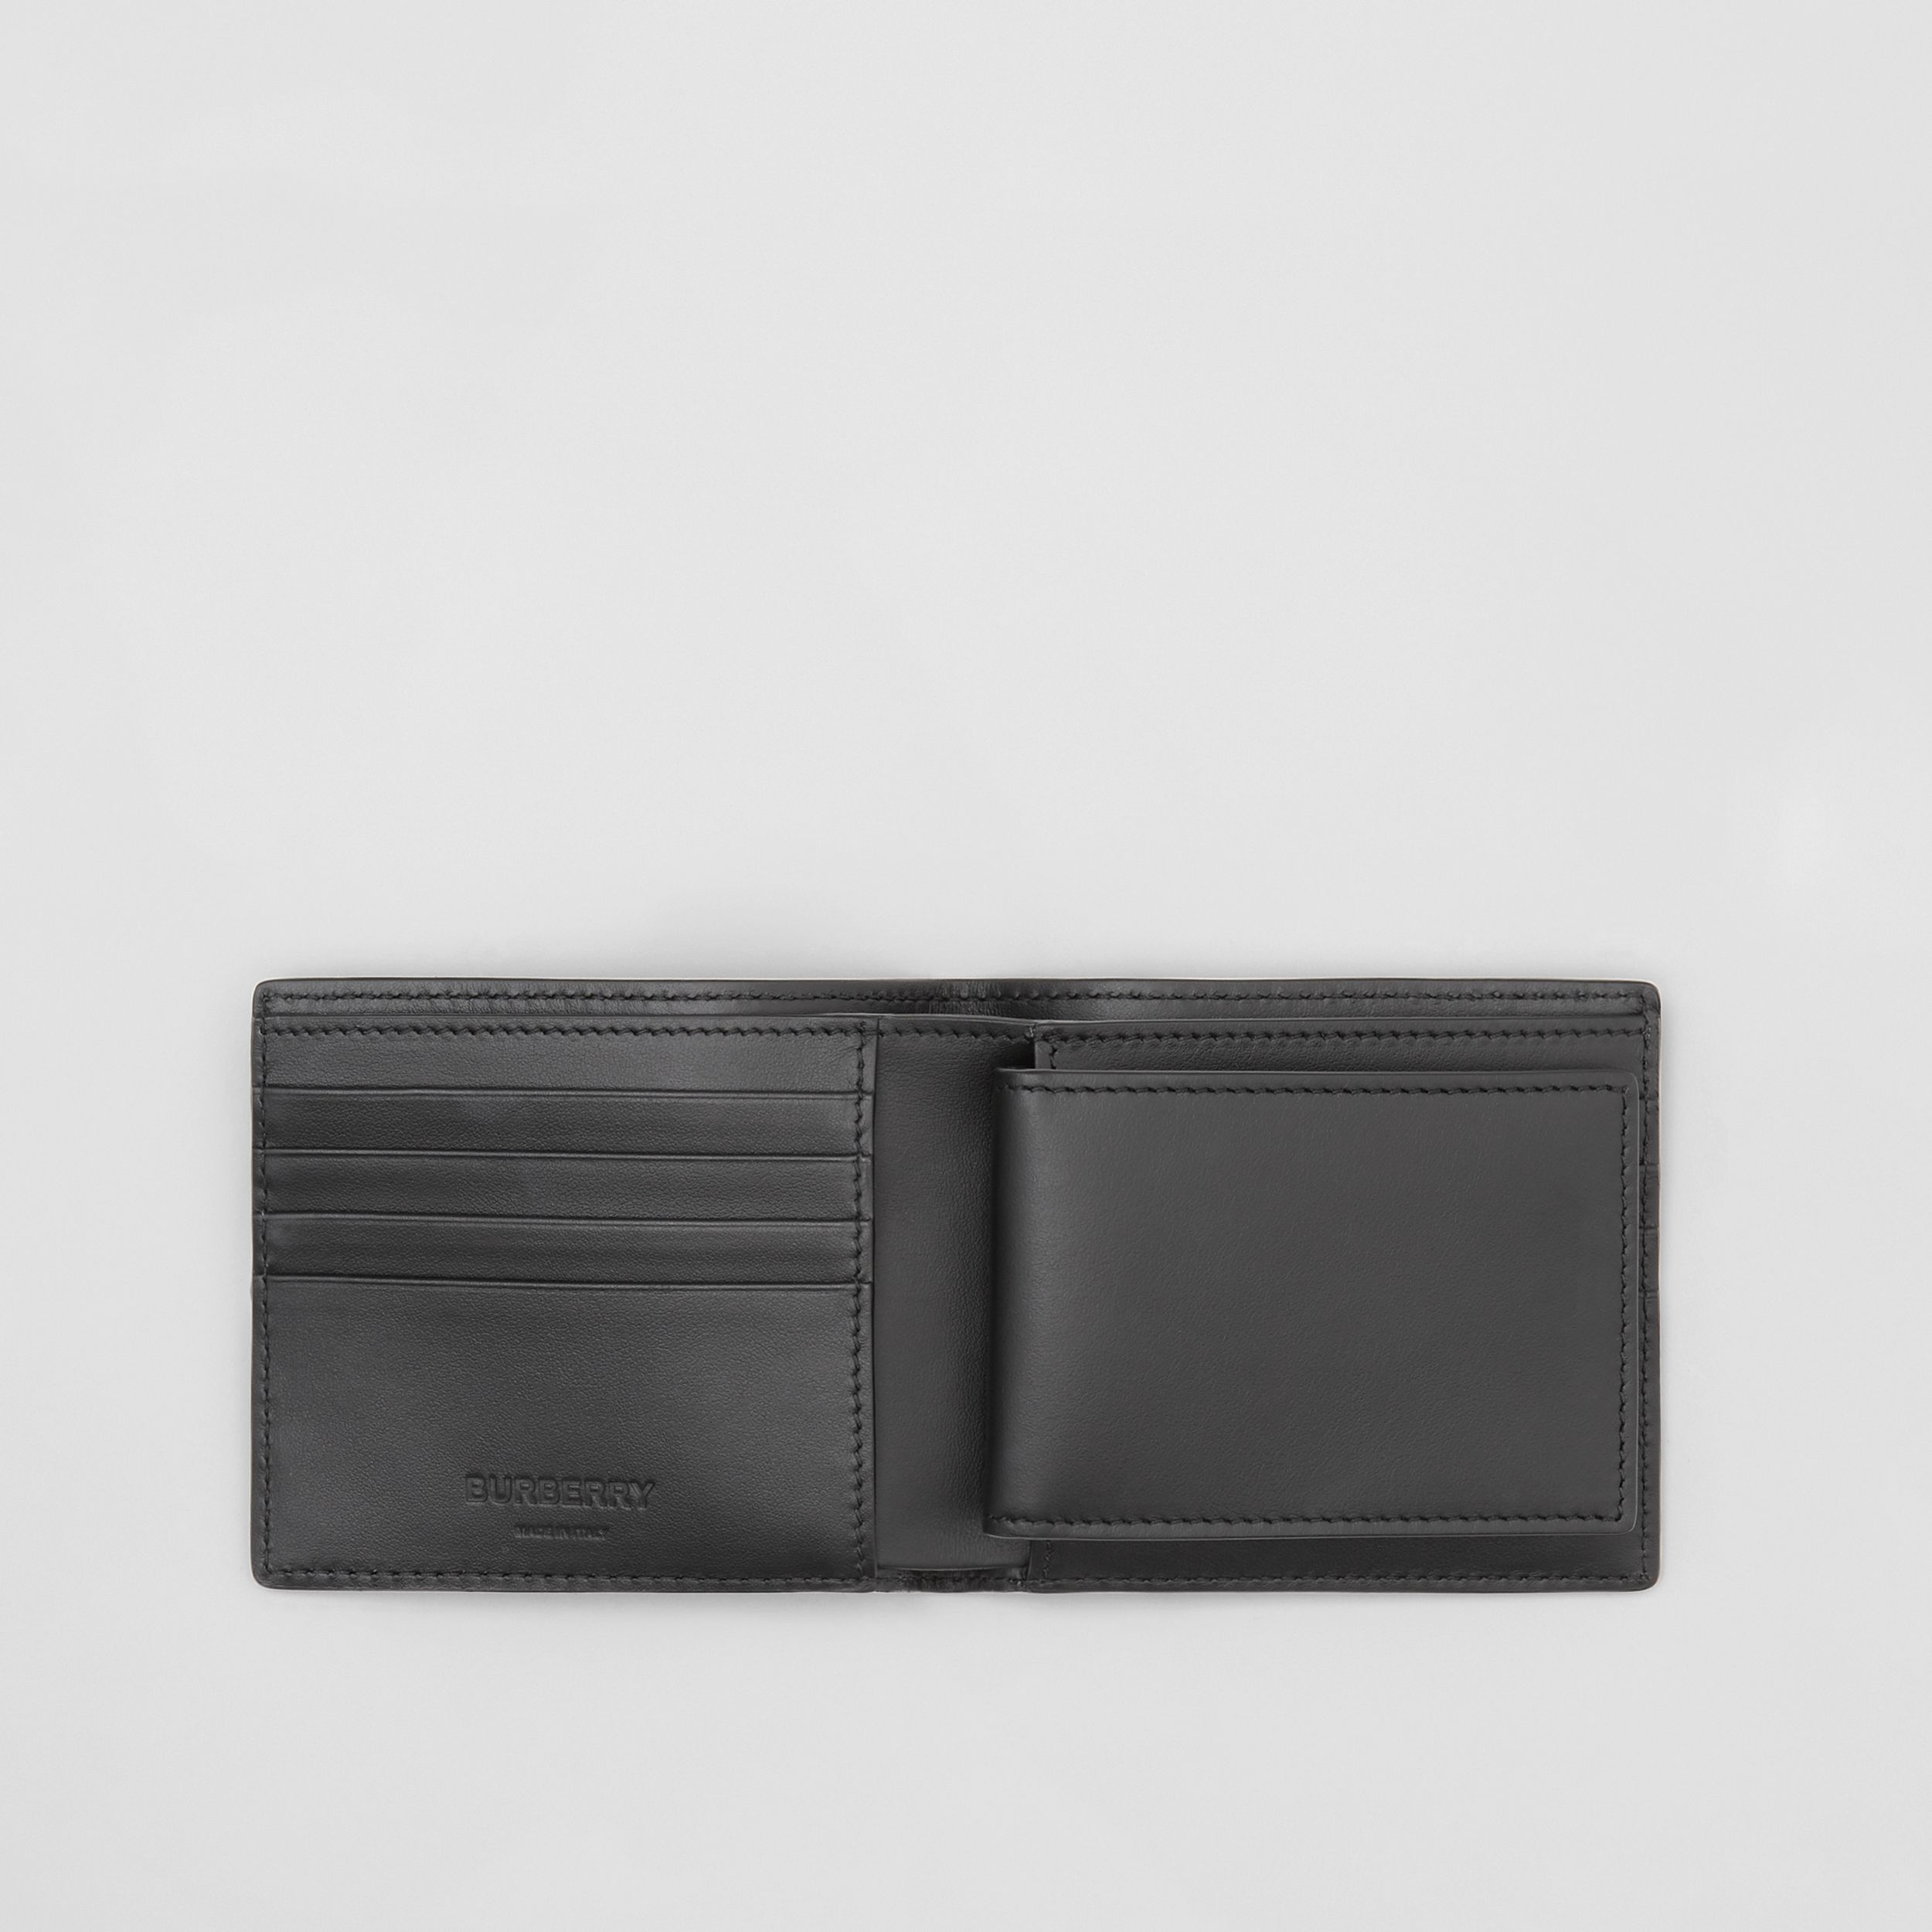 Monogram Leather Bifold Wallet with ID Card Case in Black - Men | Burberry Canada - 3